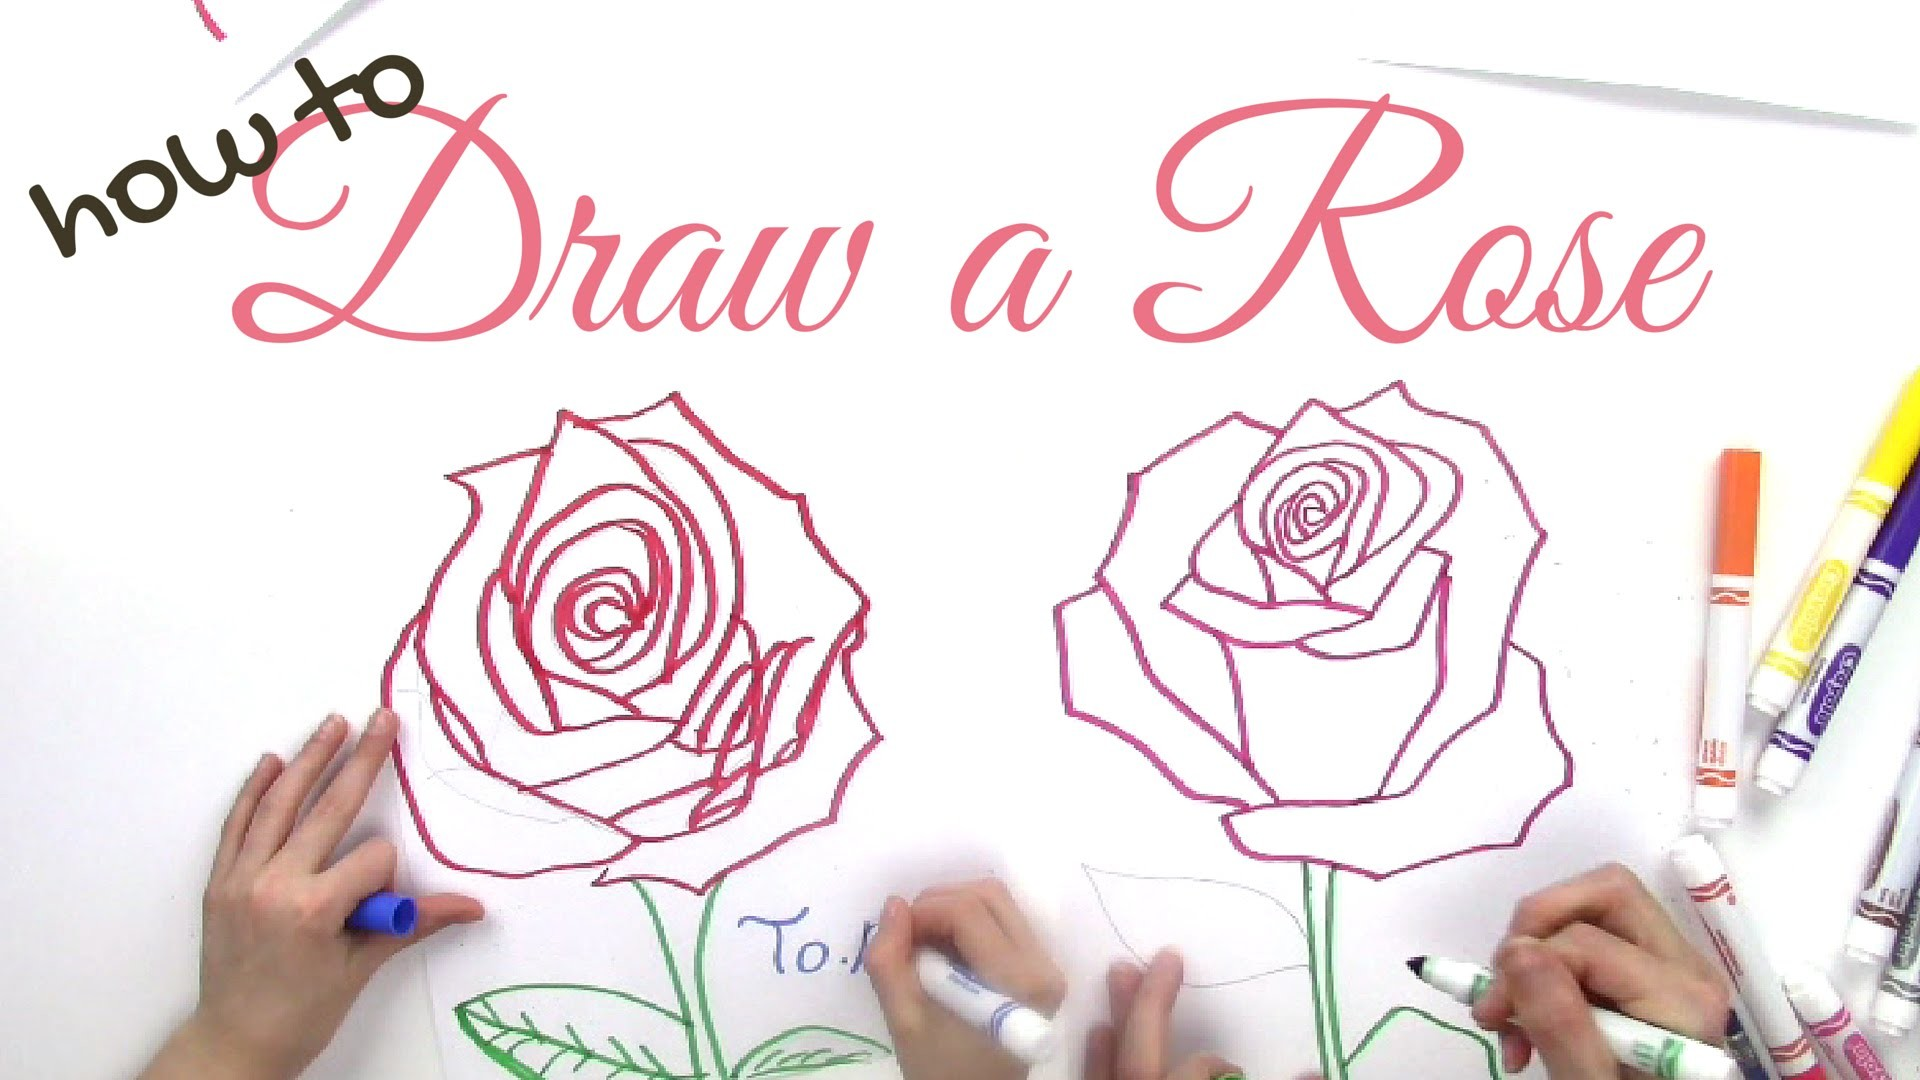 How to Draw a Rose Step by Step for Kids